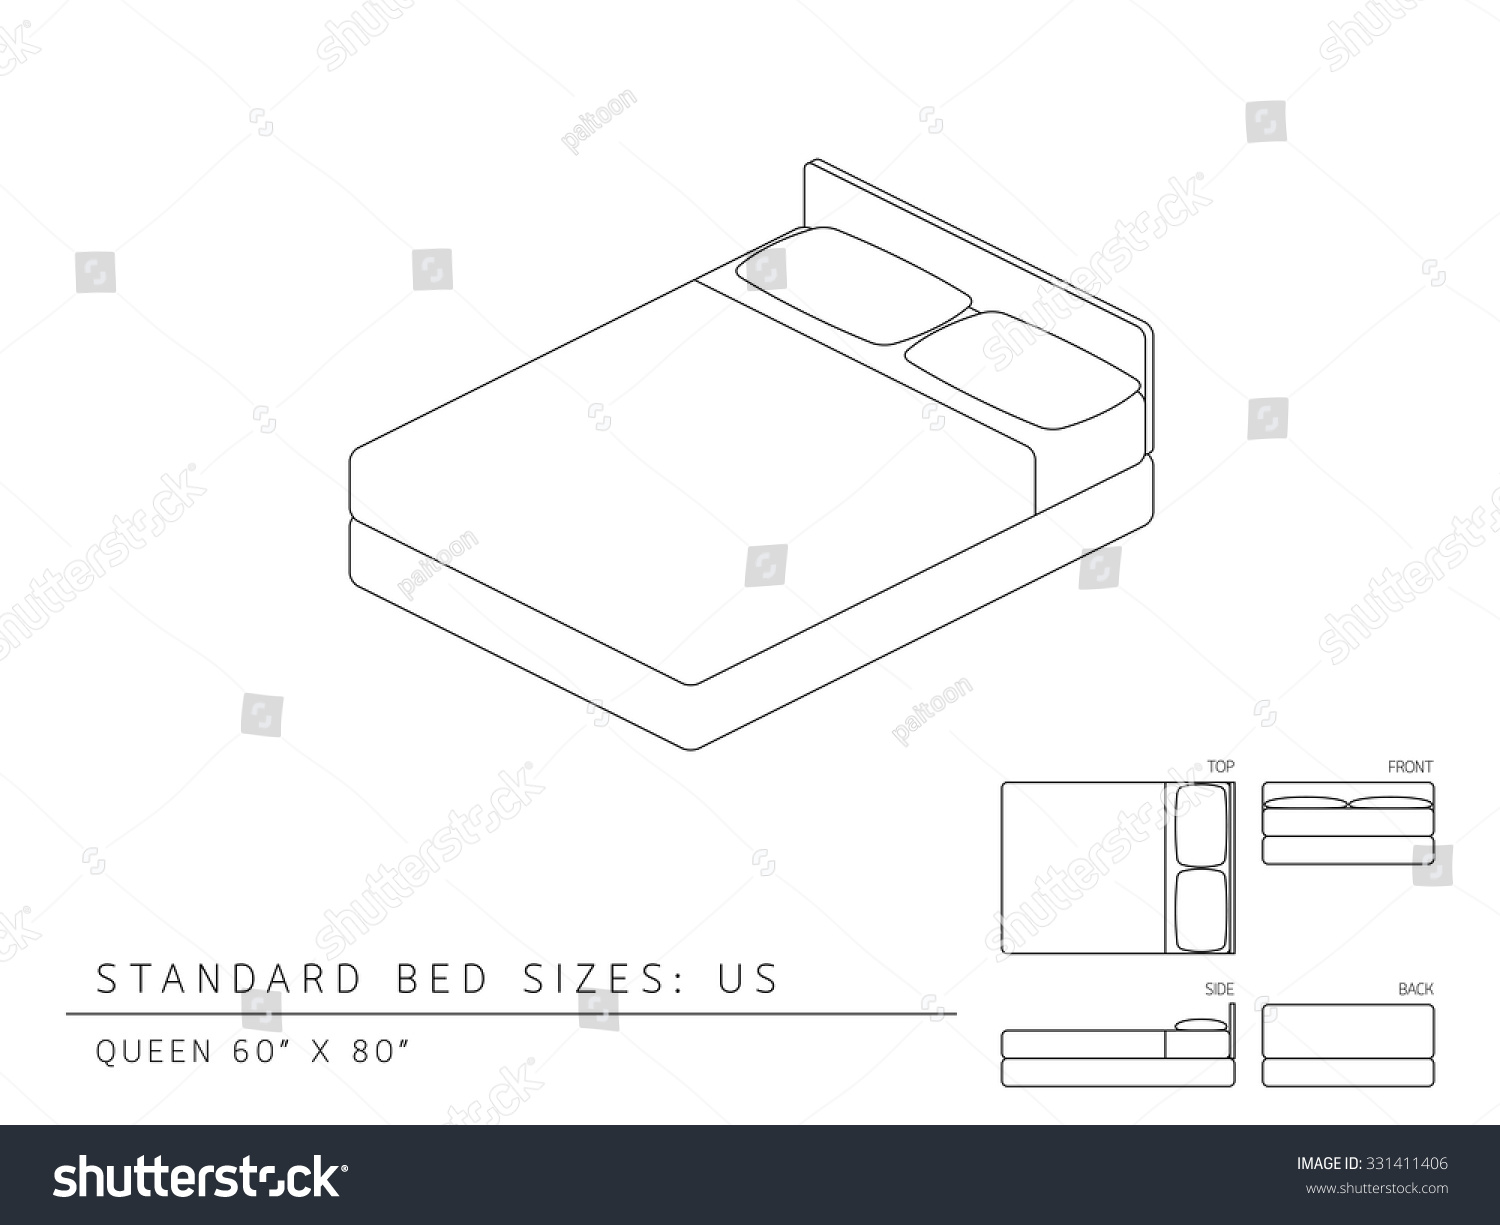 Standard Bed Sizes Of Us United States America Queen Size 60 X 80 Inches Perspective 3d With Dimension Top Front Side And Back View Illustration